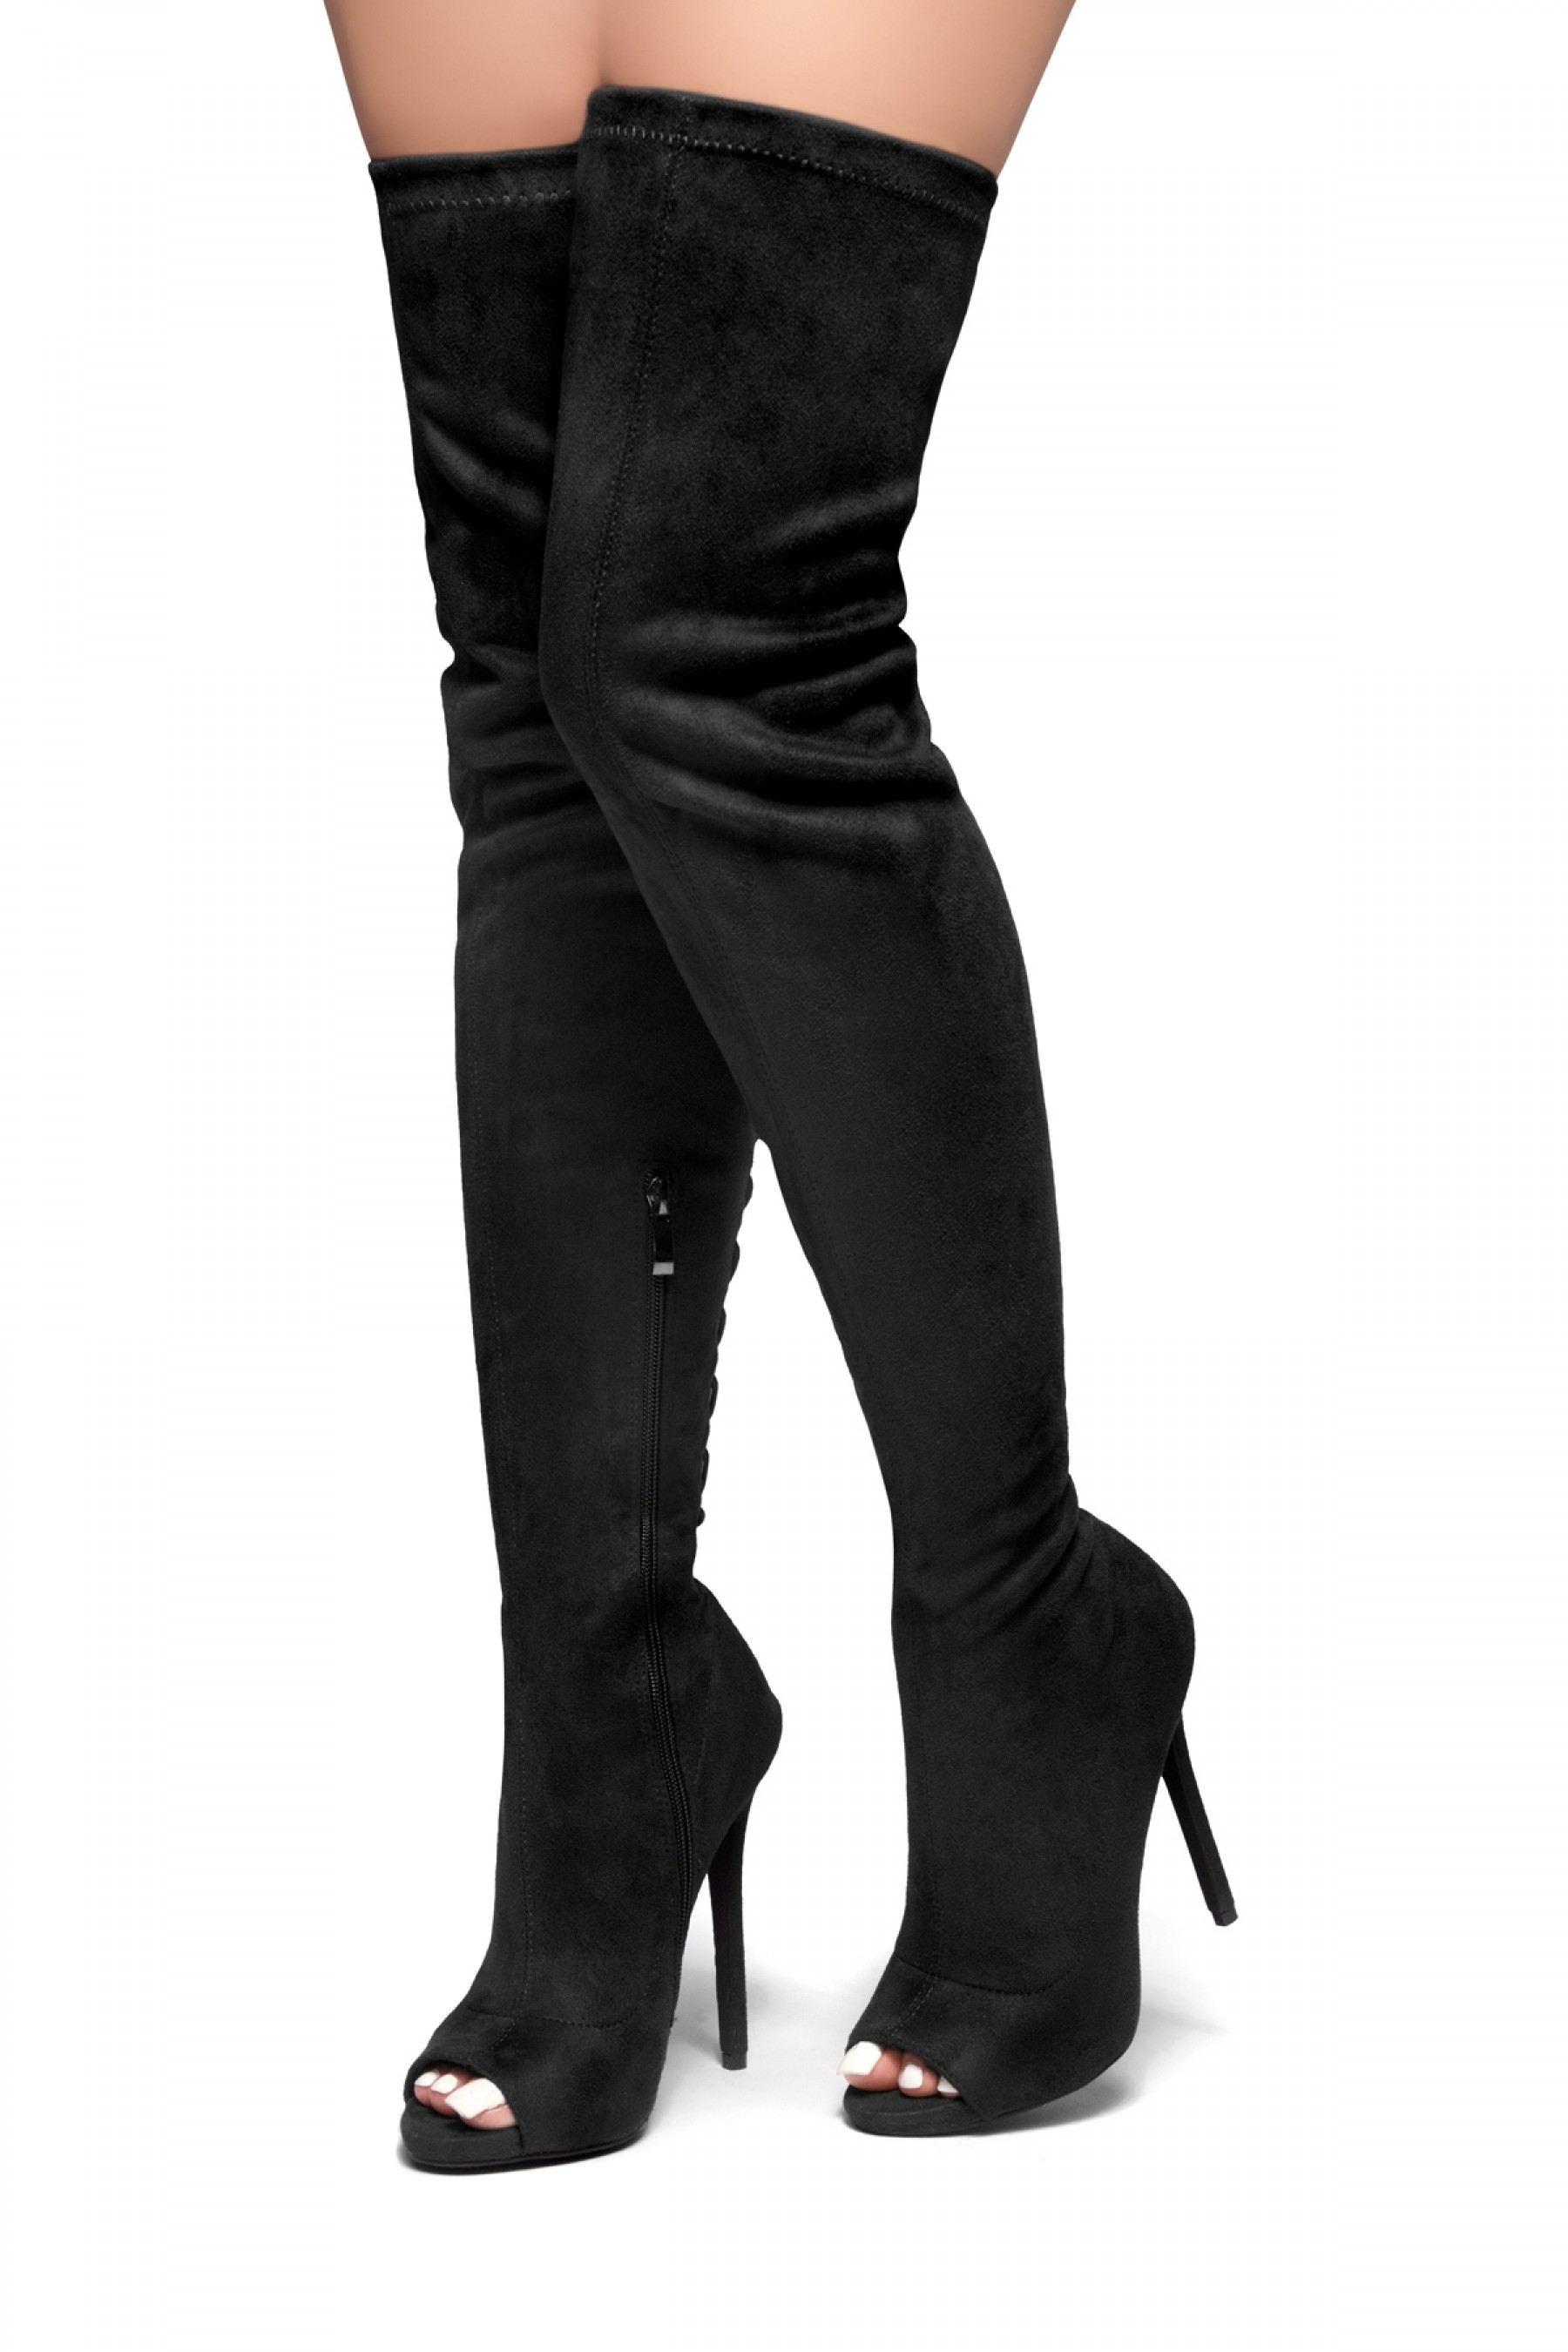 HerStyle TIMELESS MOMENTS-A peep toe, stiletto heel with tie back detail boots (Black)